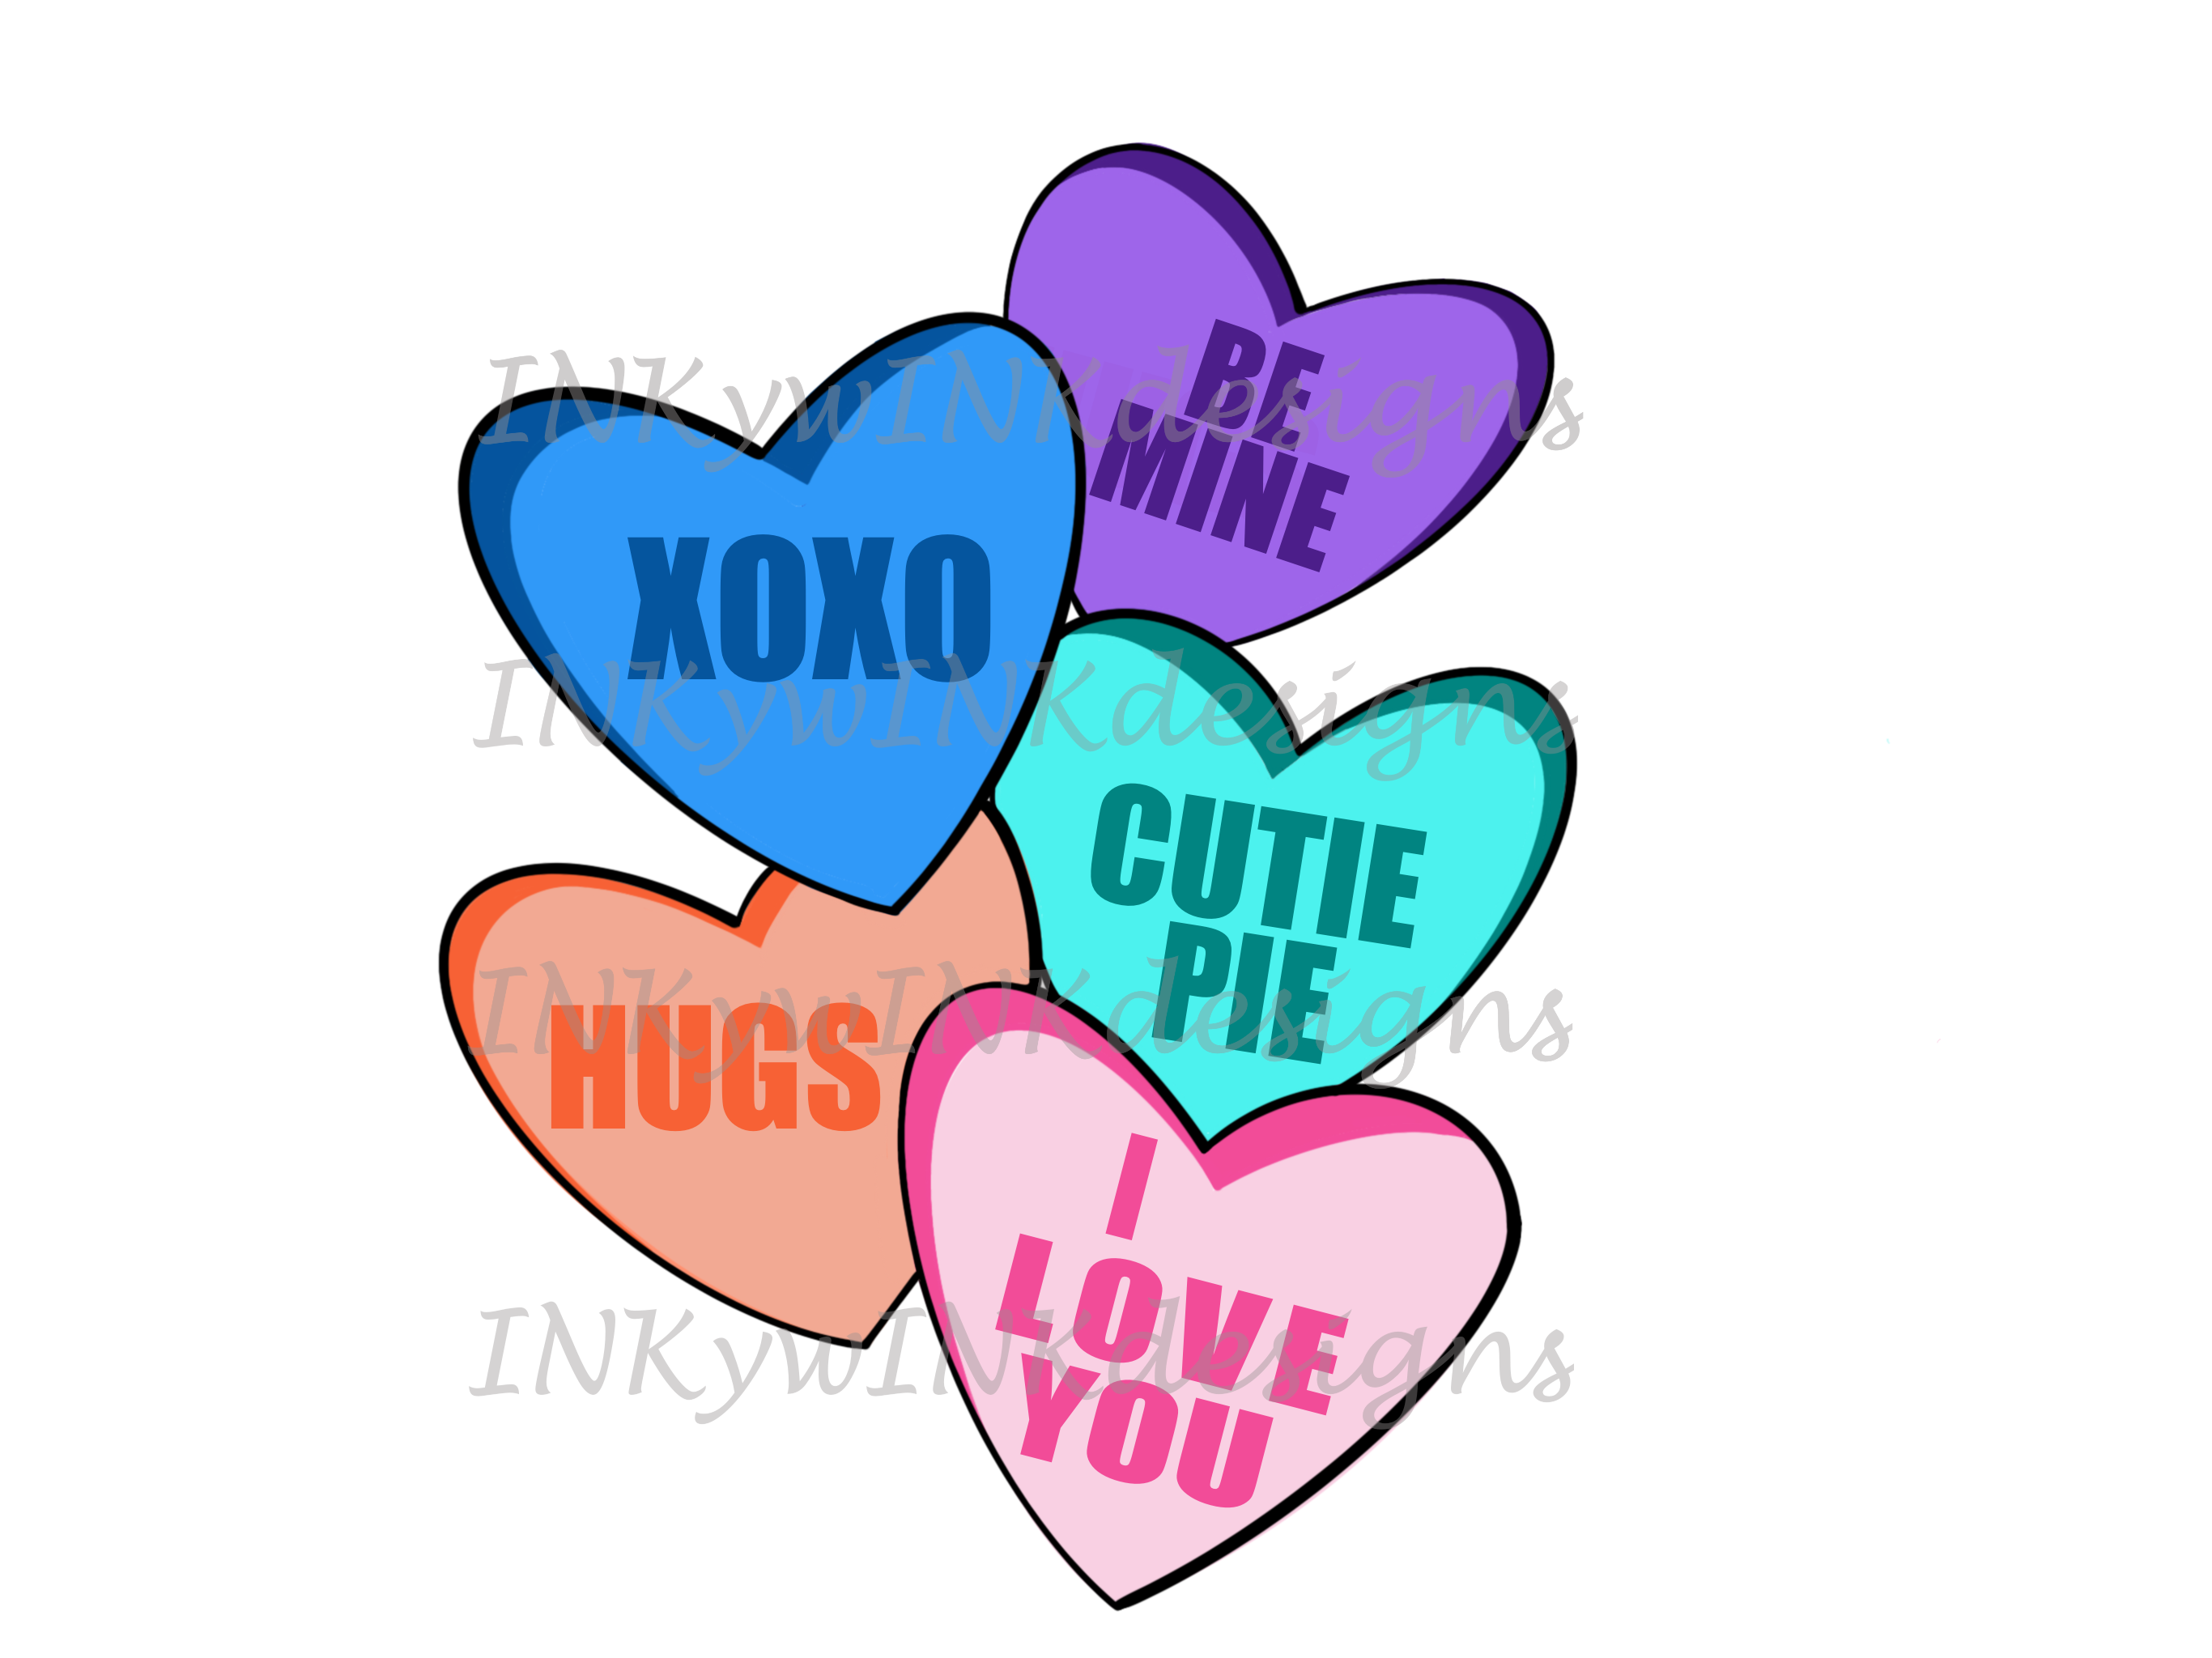 Valentines Day Heart Candy Png Love Valentines Day Hearts Candy Valentine Candy Hearts Halloween Pillows